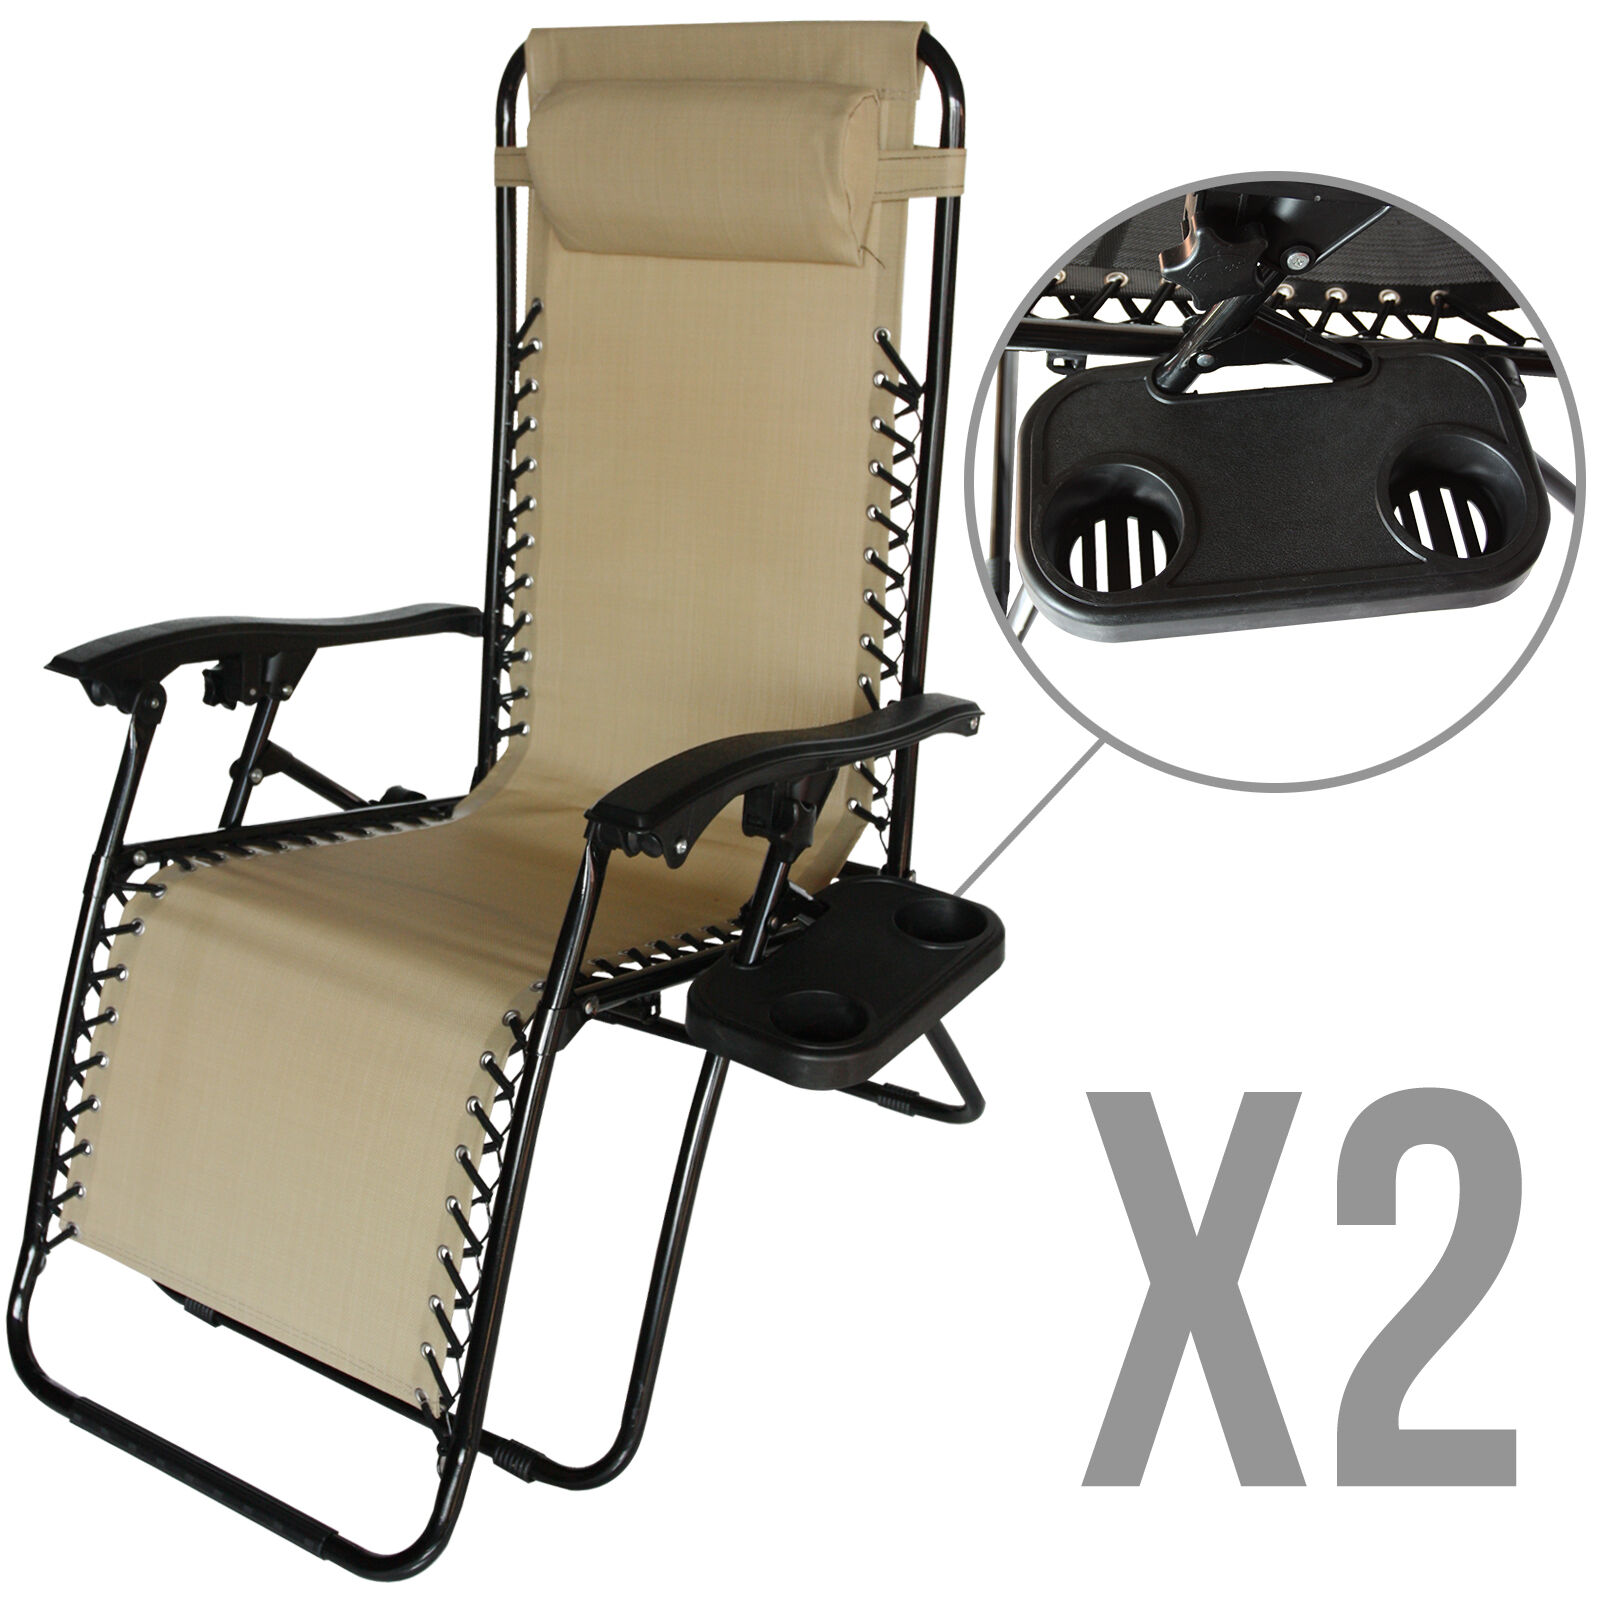 2 Zero Gravity Folding Lounge Beach Chairs Utility Tray Outdoor Recliner in T